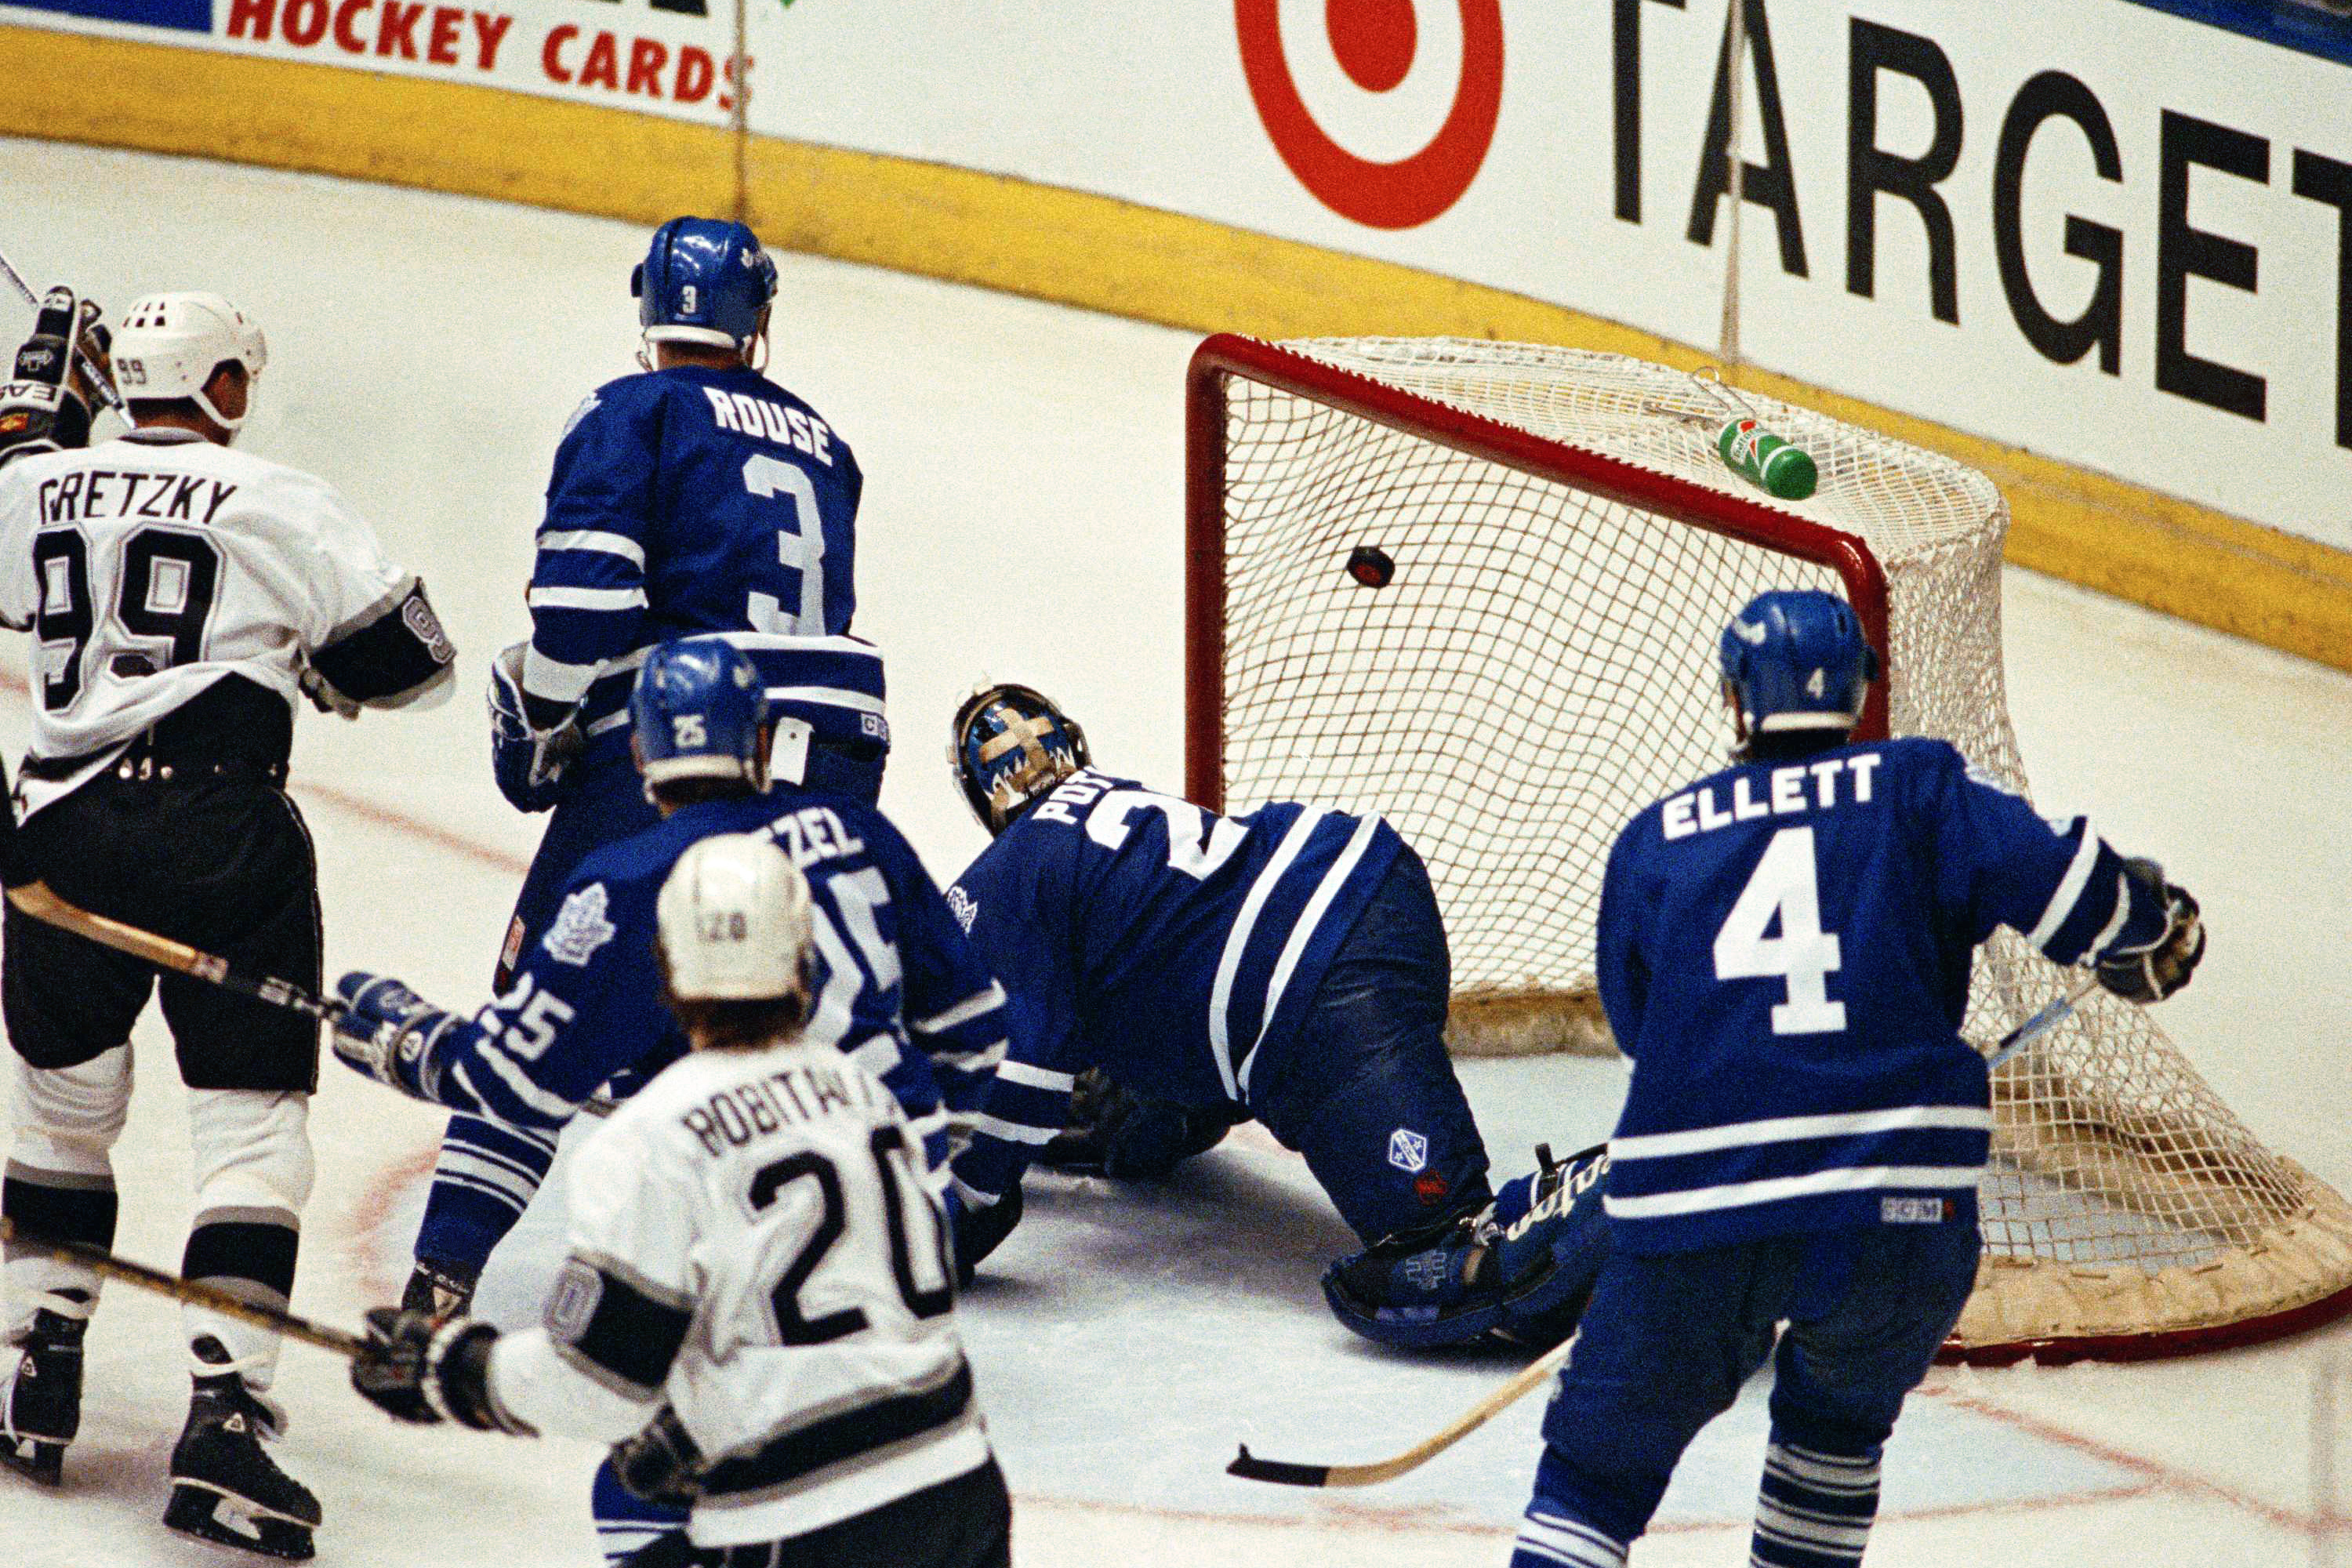 Toronto Maple Leafs goalie Felix Potvin watches Los Angeles King's Wayne Gretzky's shot go into the net for the game-winning goal in sudden-death overtime to tie the seven game series at three games apiece on Wednesday, May 27, 1993 in Inglewood, Calif., at Forum. The final score was 5-4. Gretzky teammate Luc Robitaille (20), who assisted in the scoring effort, also watches along with a pair Maple Leaf players. (AP Photo/Mark J. Terrill)